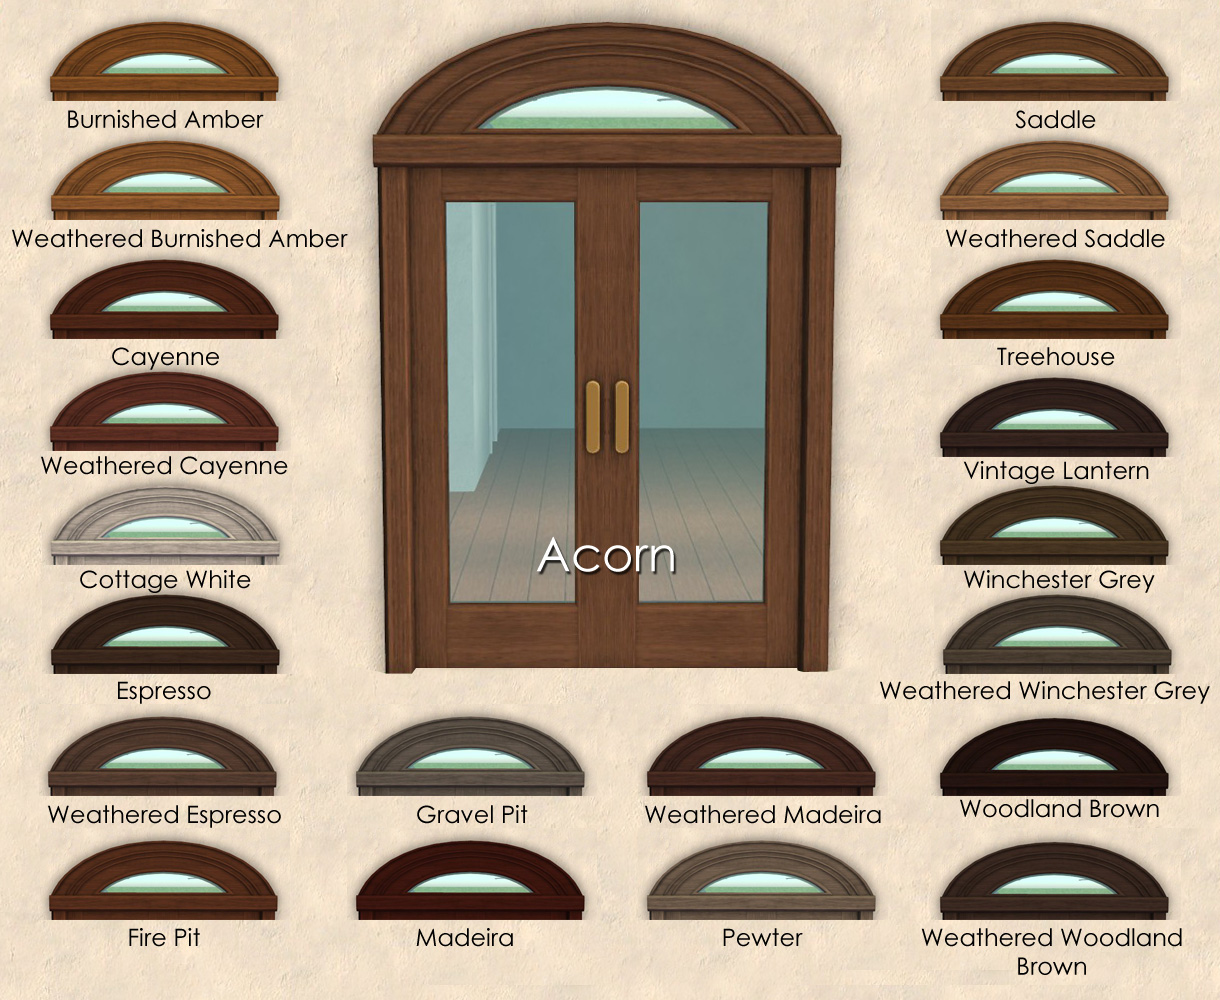 Mod The Sims Bon Voyage Hotel Door Window Recolors